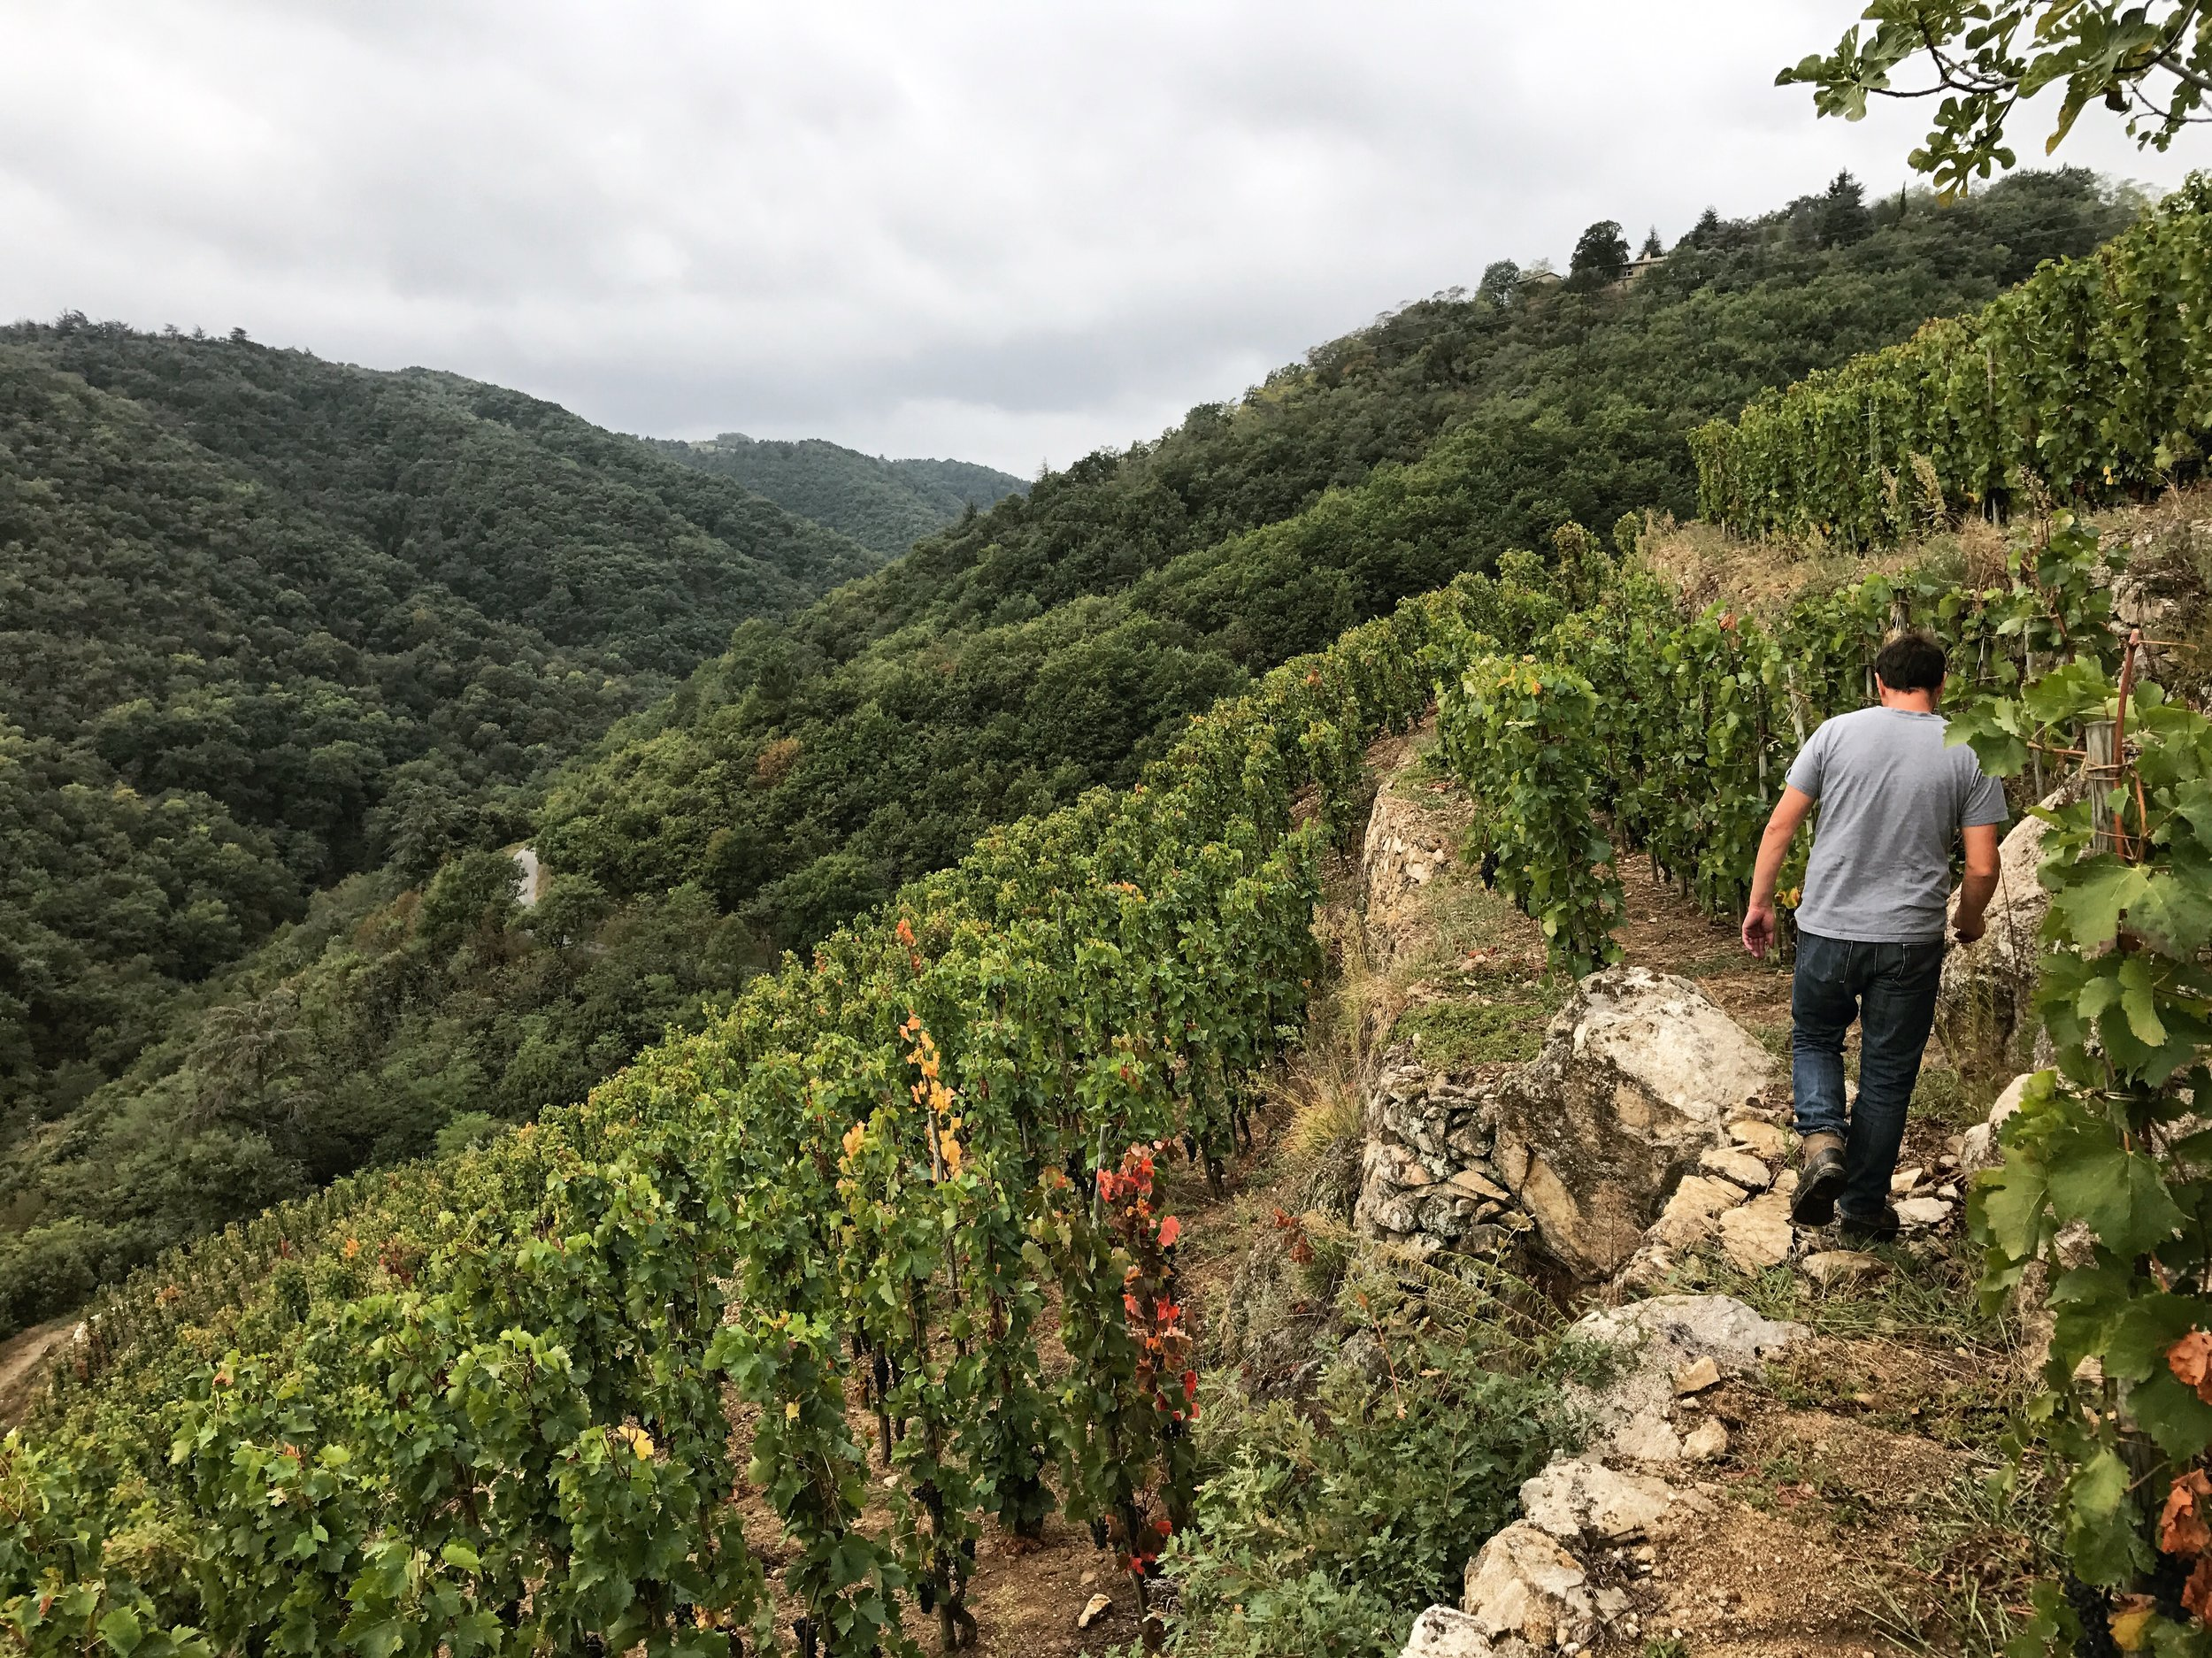 Jean-Louis Chave on one of his reclaimed hillside vineyards in St. Joseph.